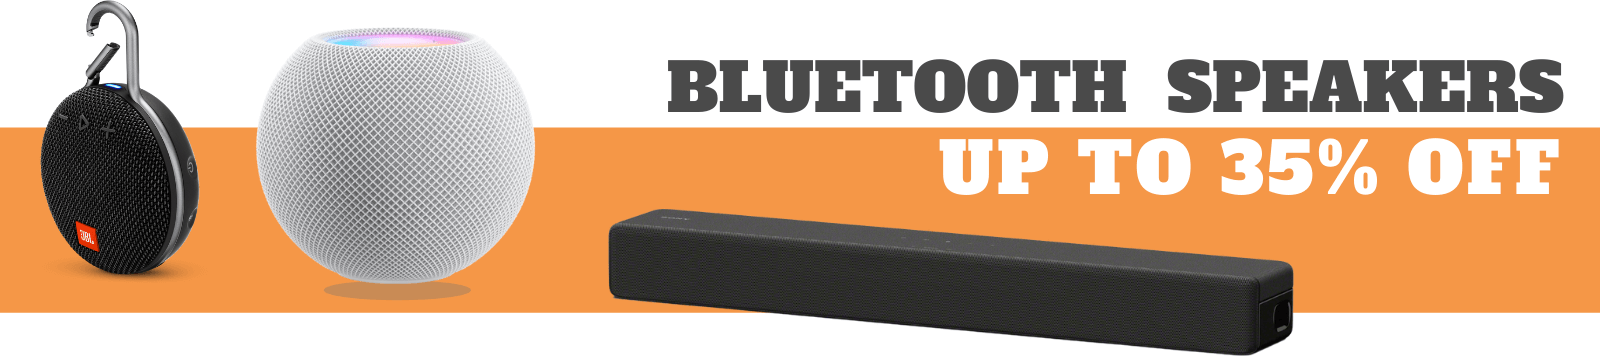 Bluetooth-Speakers-Sale-And-Offers